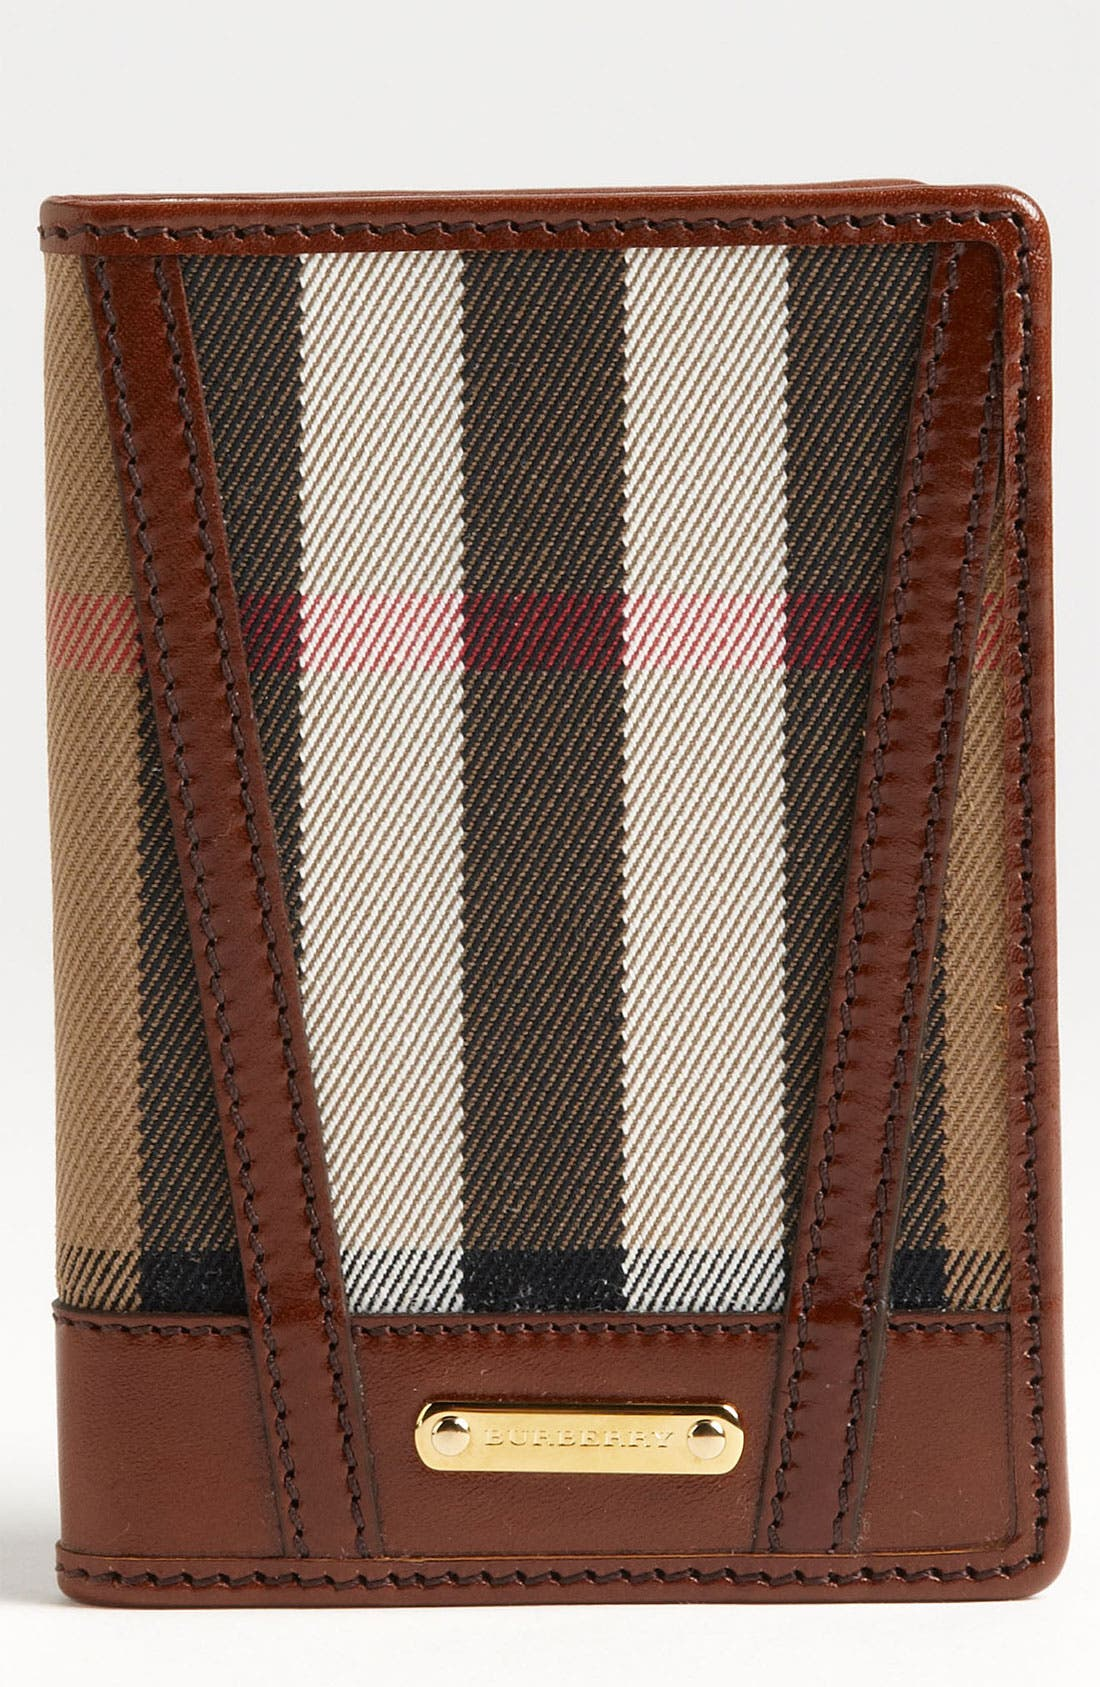 Alternate Image 1 Selected - Burberry 'House Check' Passport Wallet